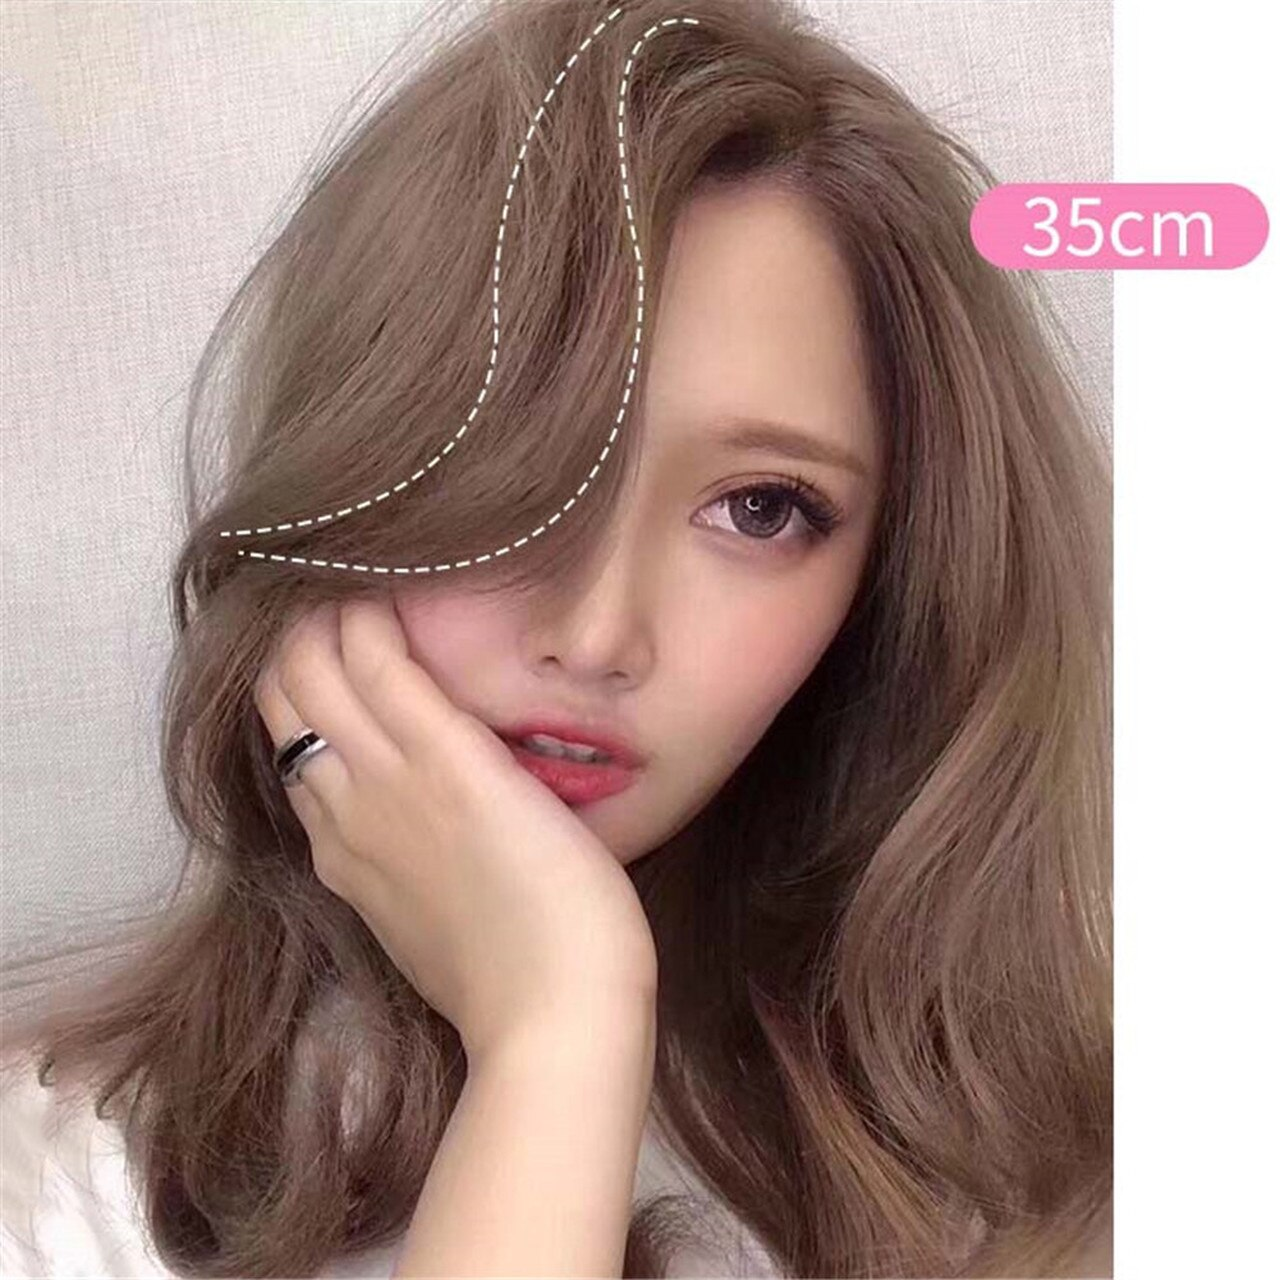 Clip In Air Fringe Long Hair Extension Side Fringe Middle Part Bang Hairpiece 2